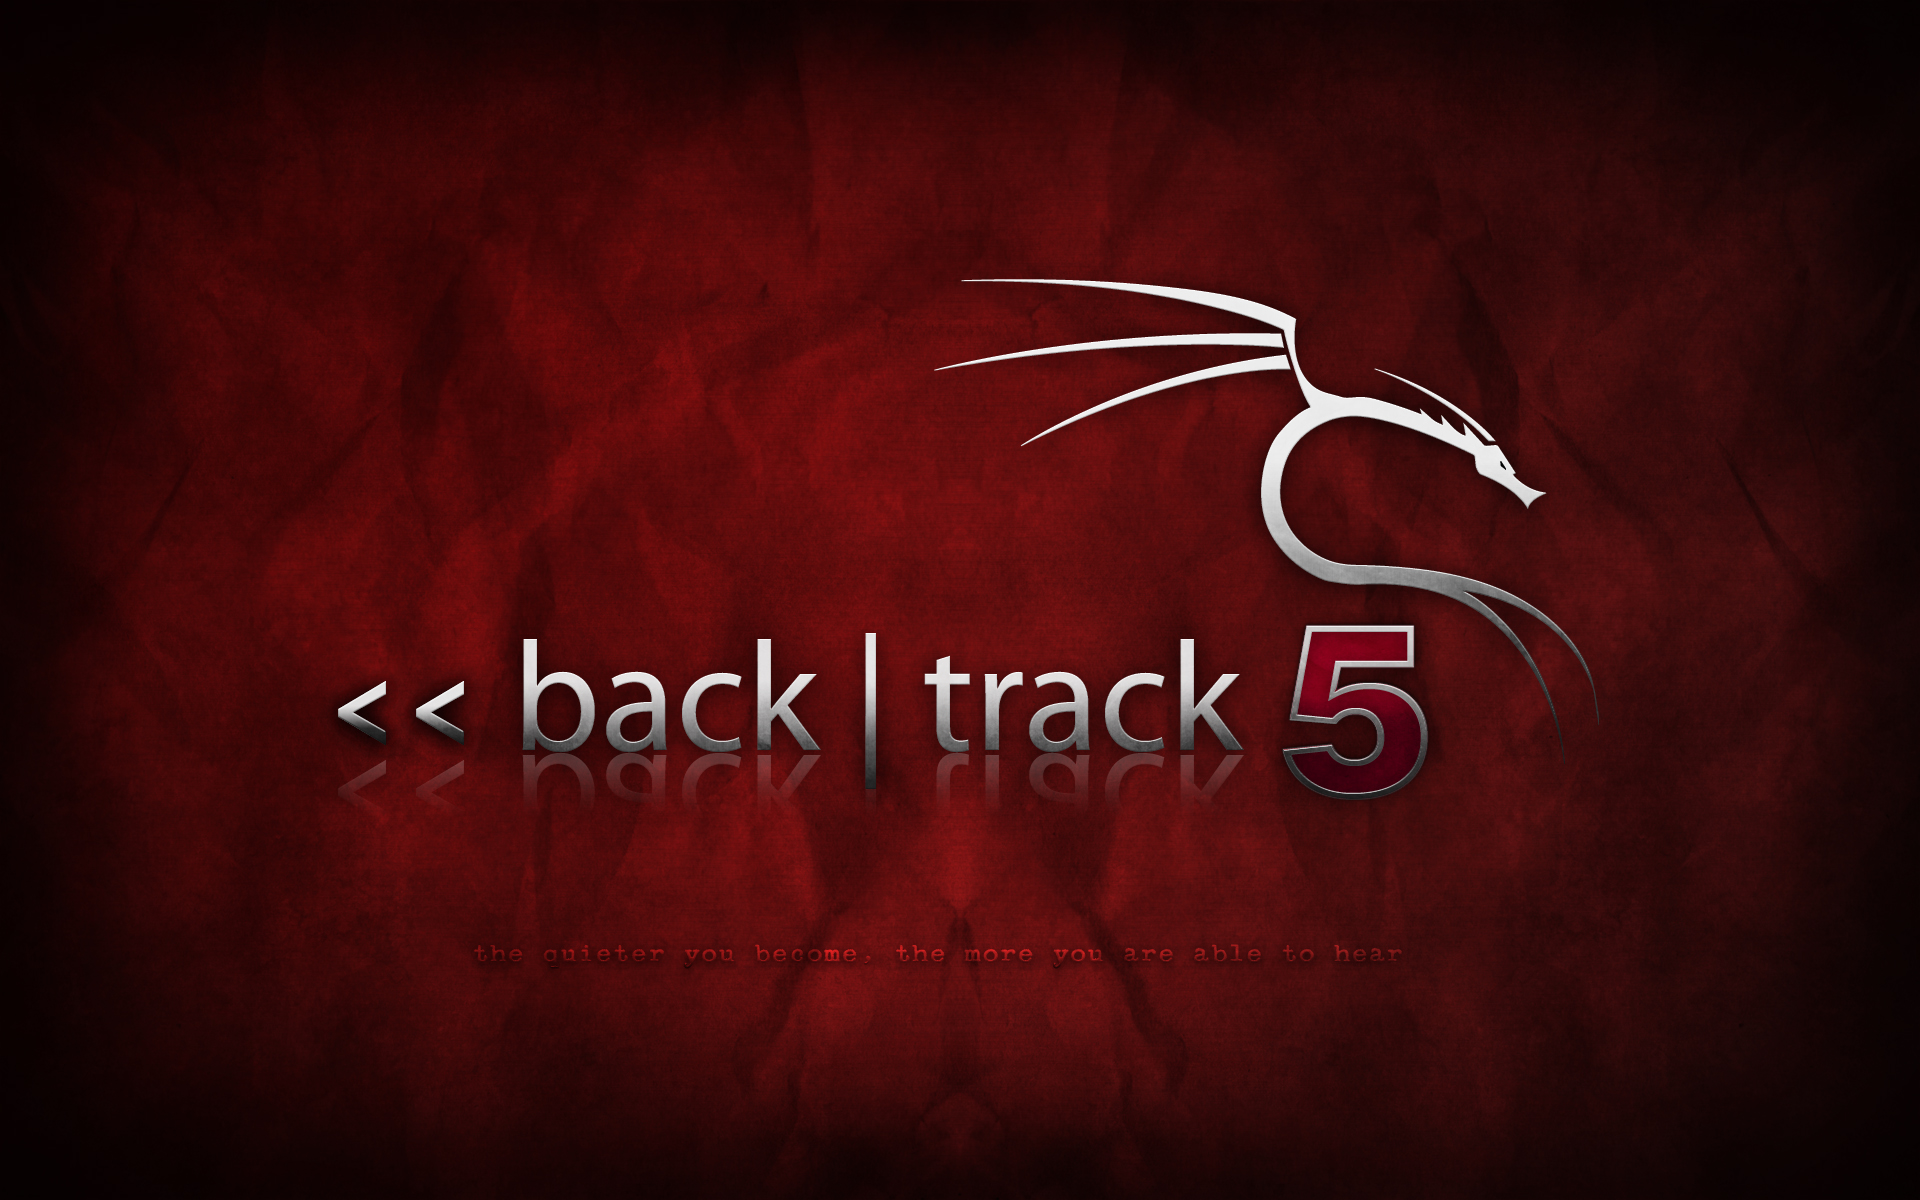 backtrack 5 r3 kde iso